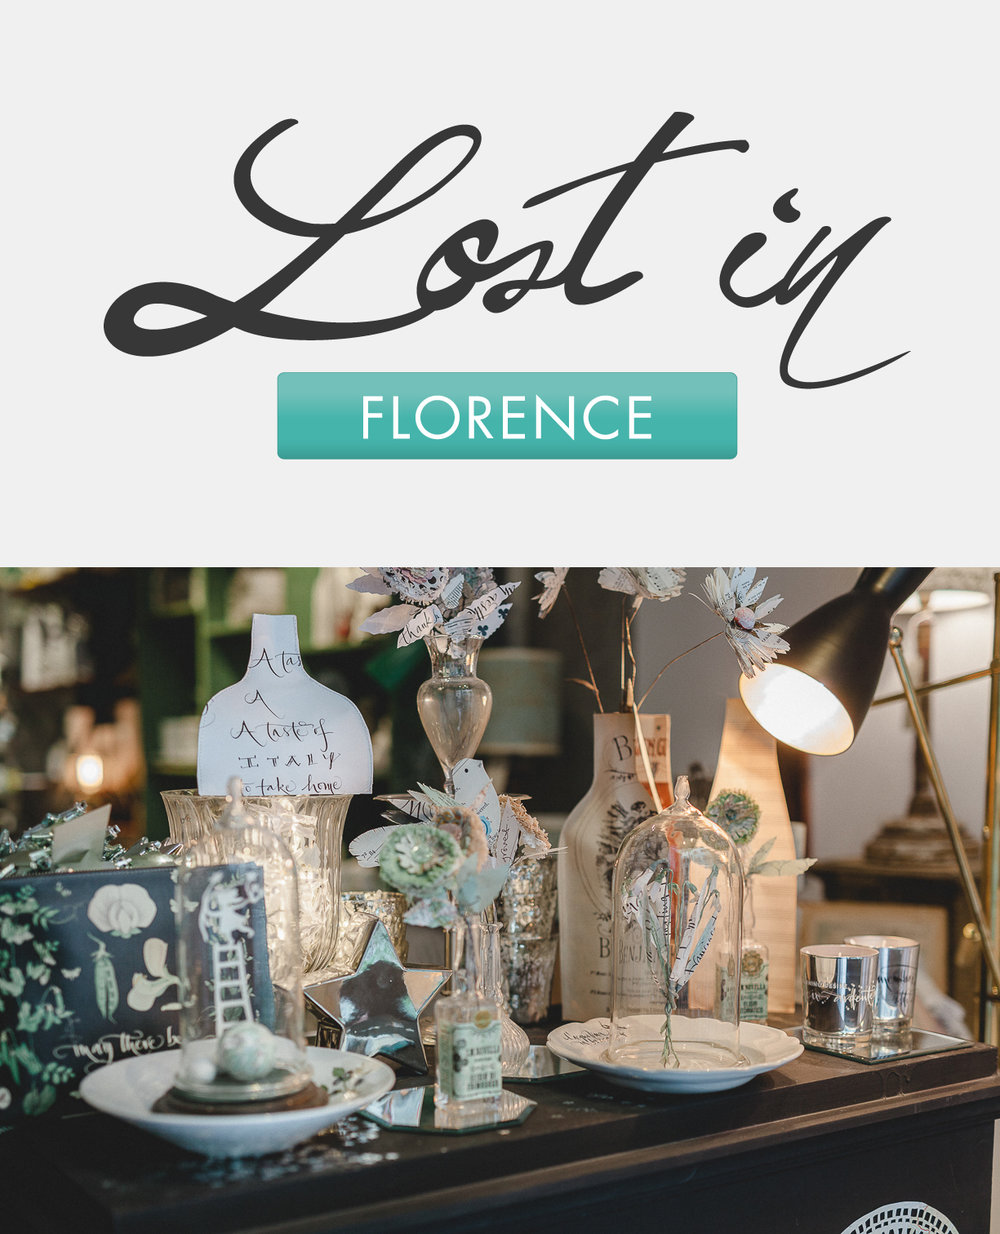 'LOSTINFLORENCE.IT' | IT